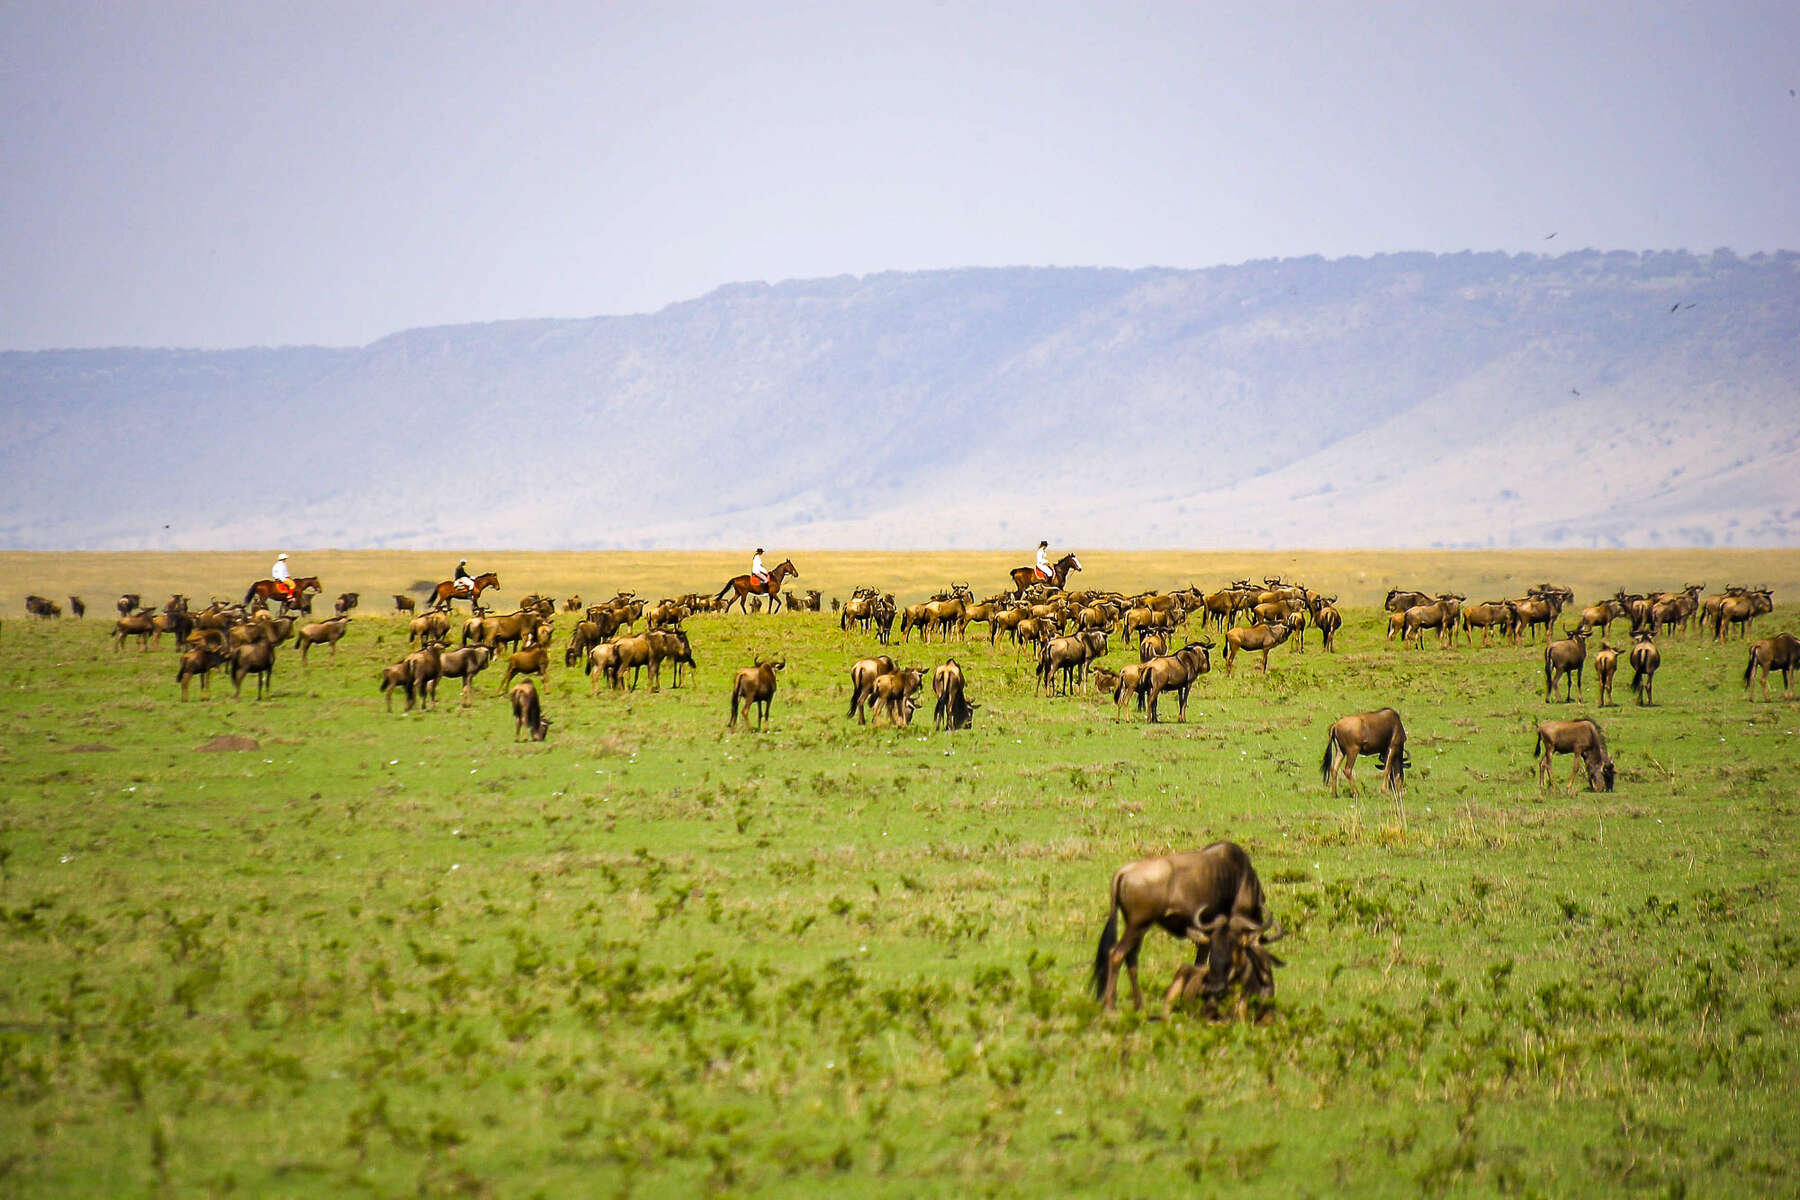 Riders on horseback in the Maasai Mara during the Great Wildebeest migration